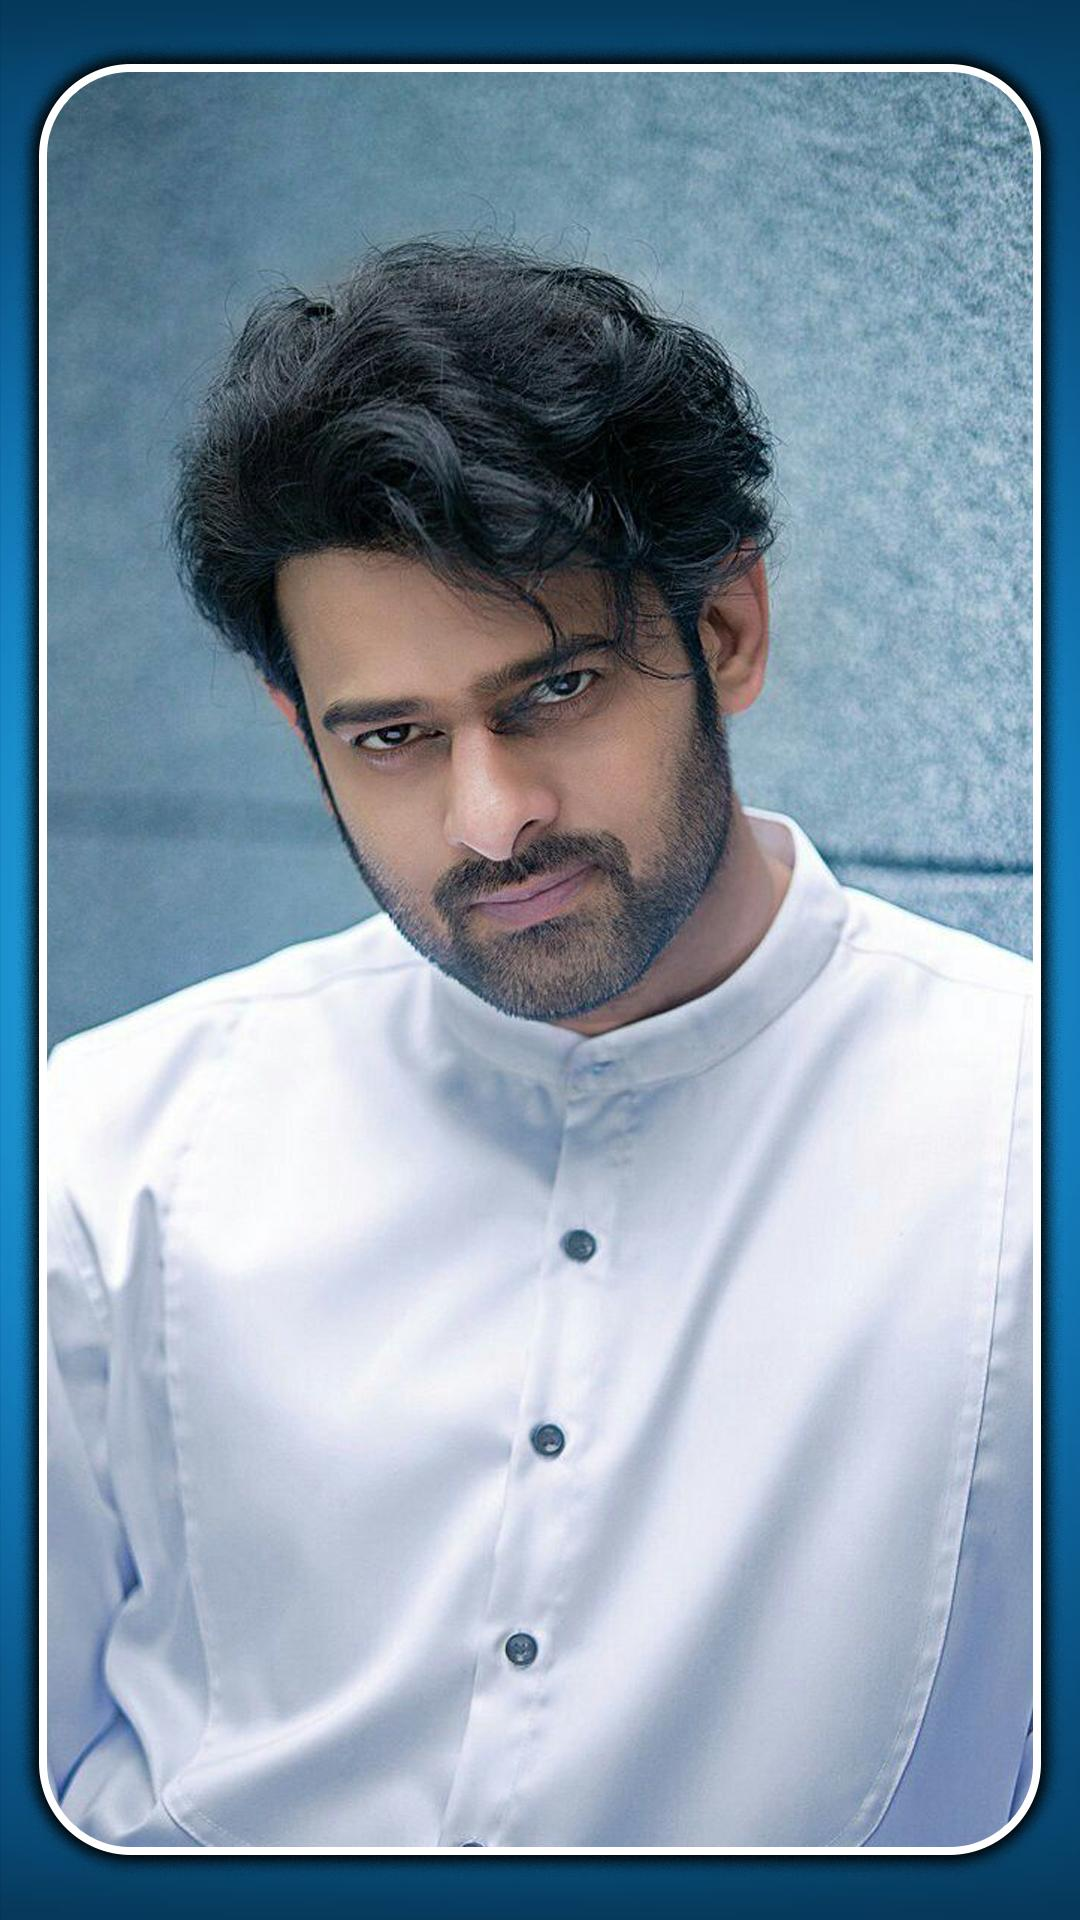 prabhas hd wallpapers for android apk download prabhas hd wallpapers for android apk